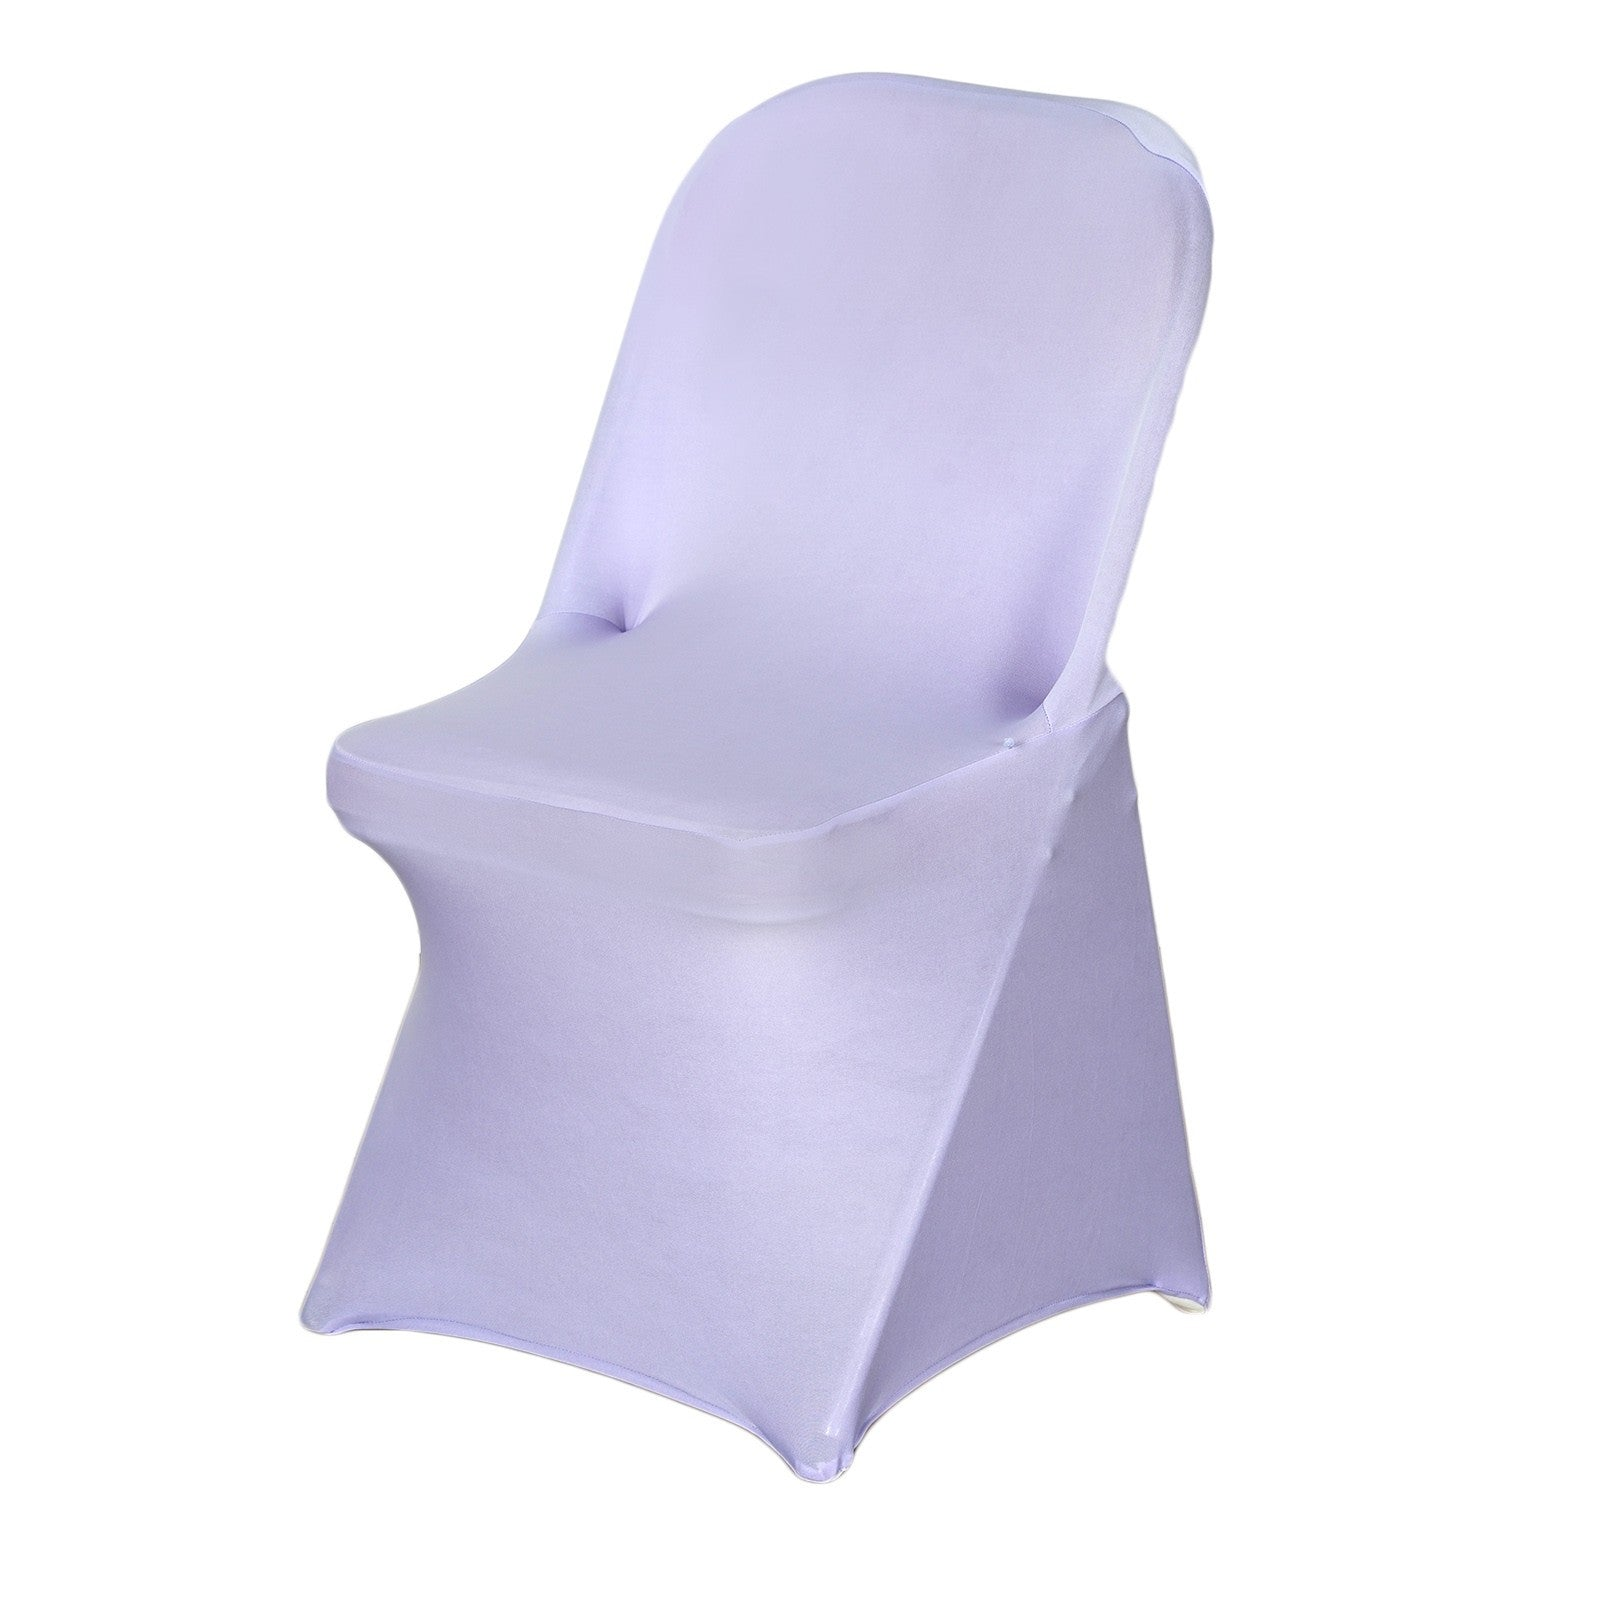 ... Chair Covers For Folding Chair / Spandex   Lavender ...